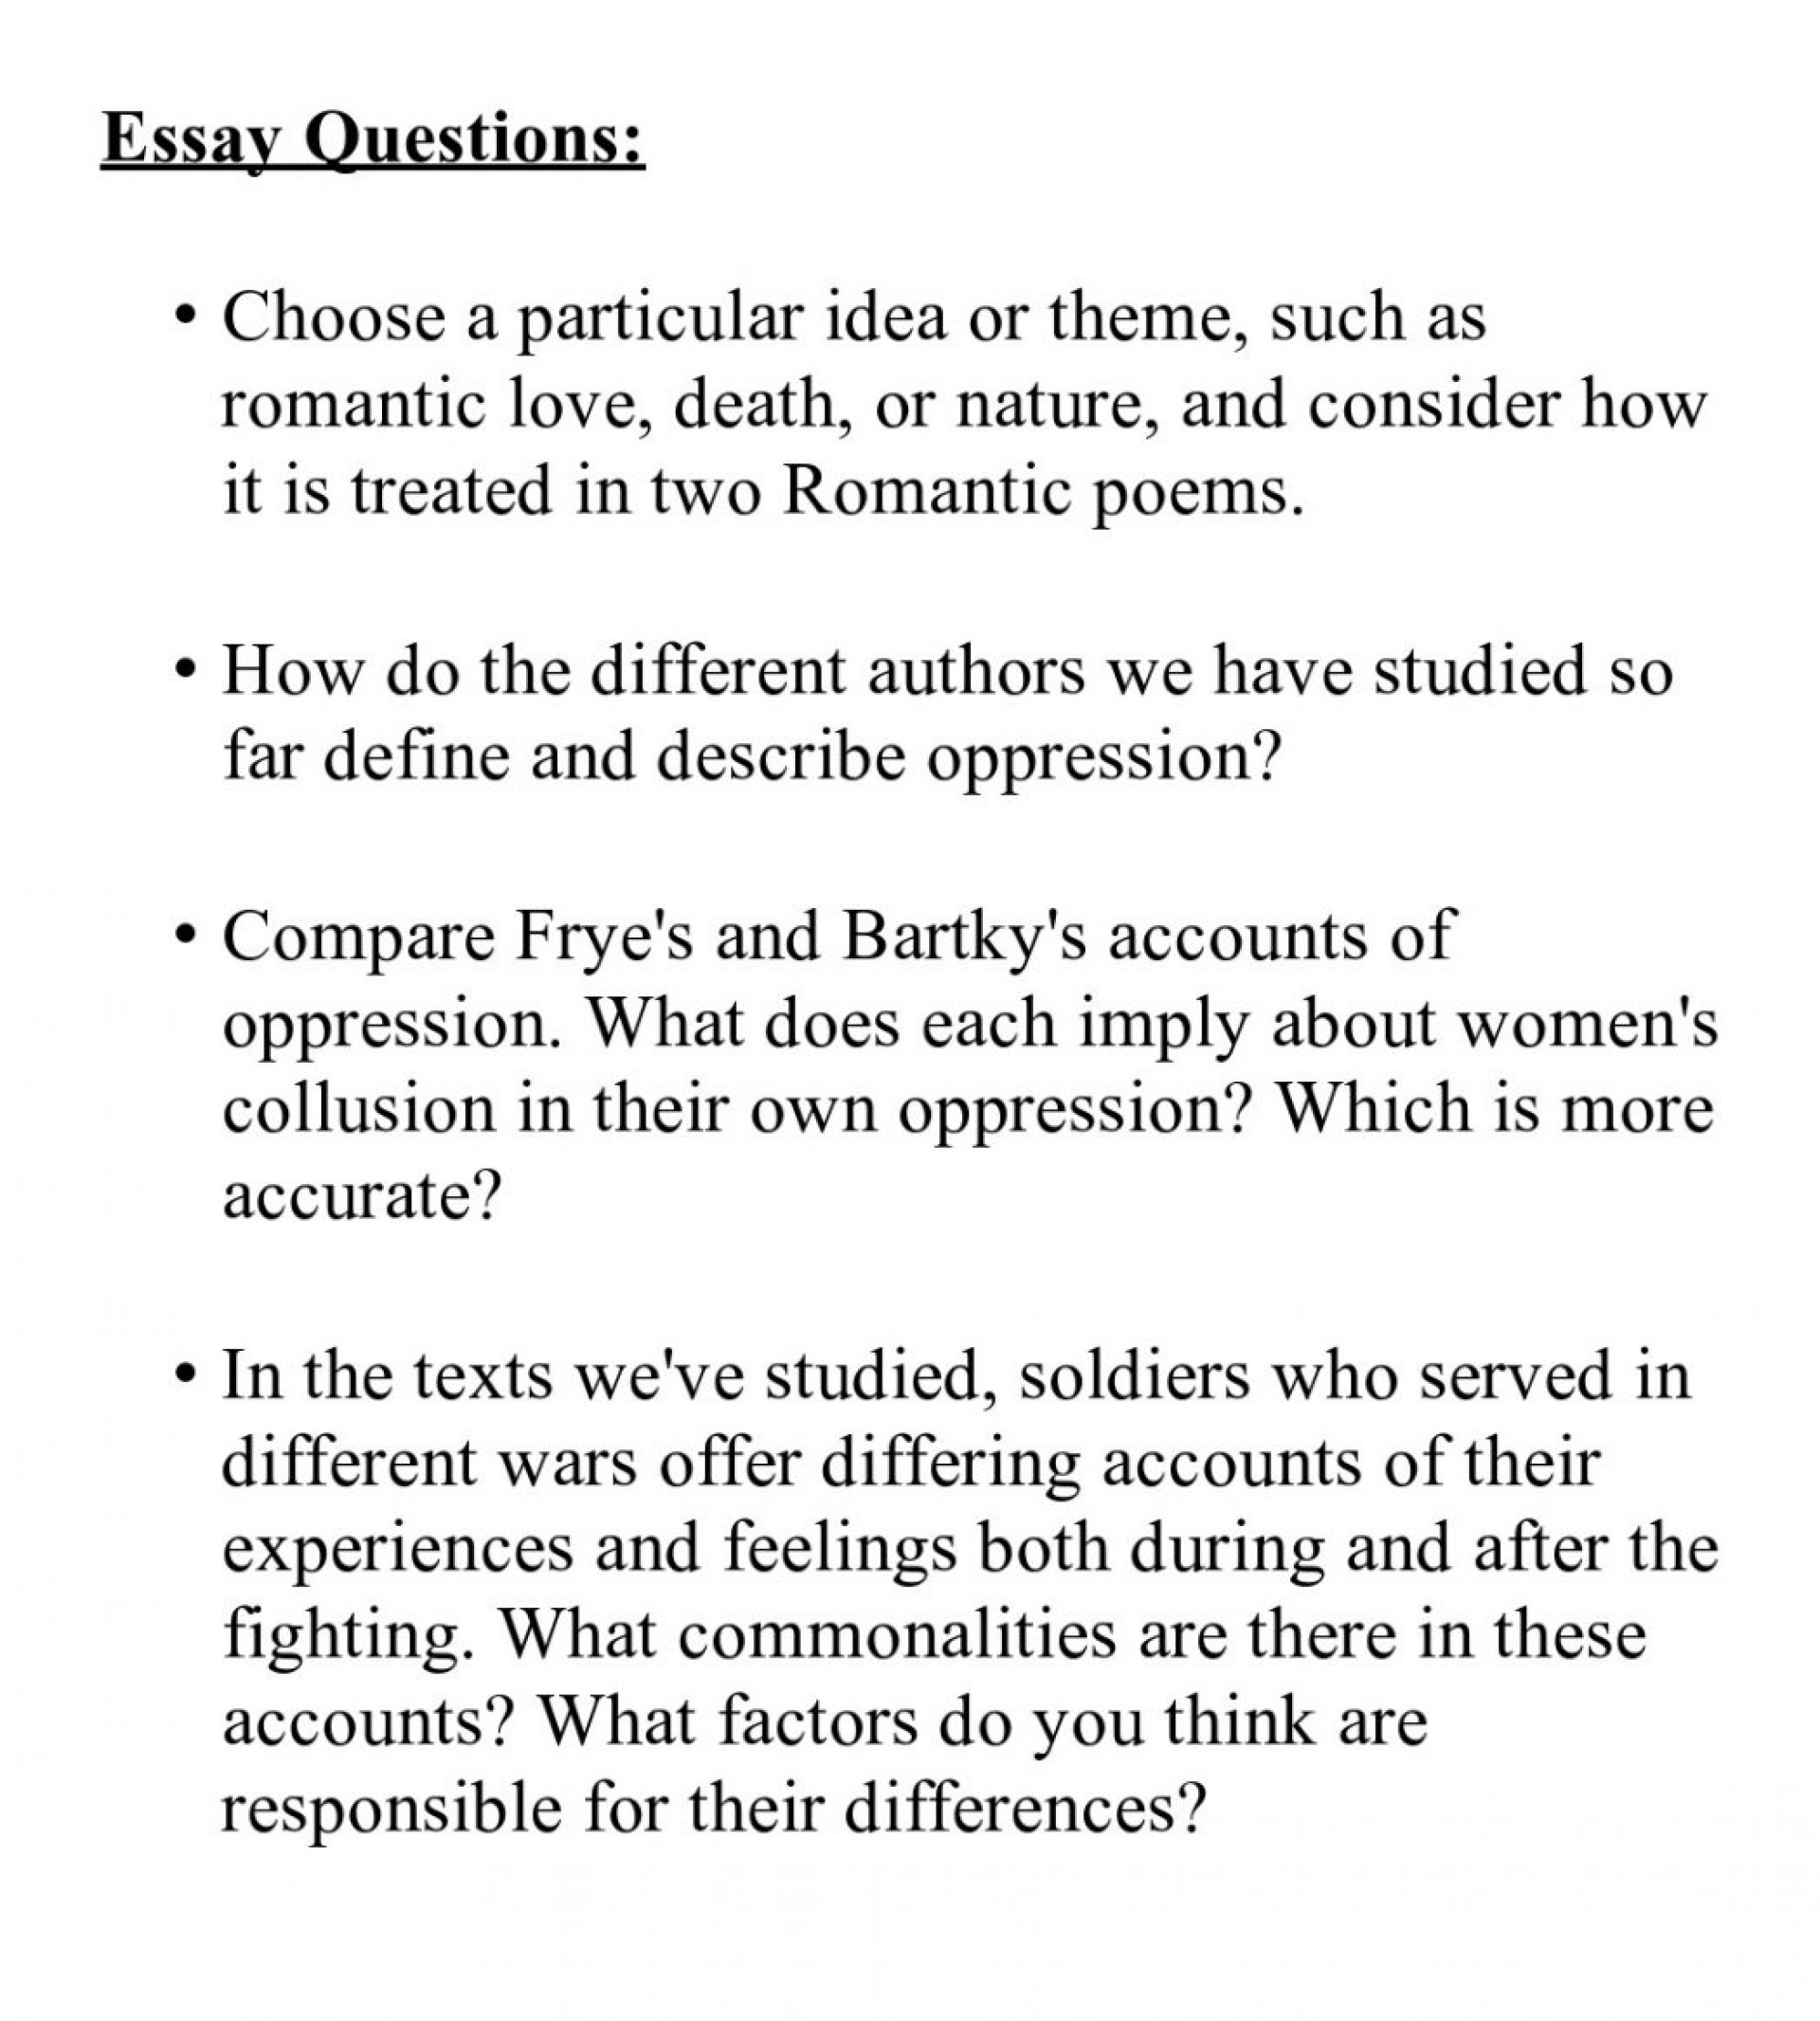 007 Nyu Essay Question Questions For Essays Cover Letter Ques Best College Application Funny Prompt 1048x1164 Awful Word Limit Supplement Stern 1920